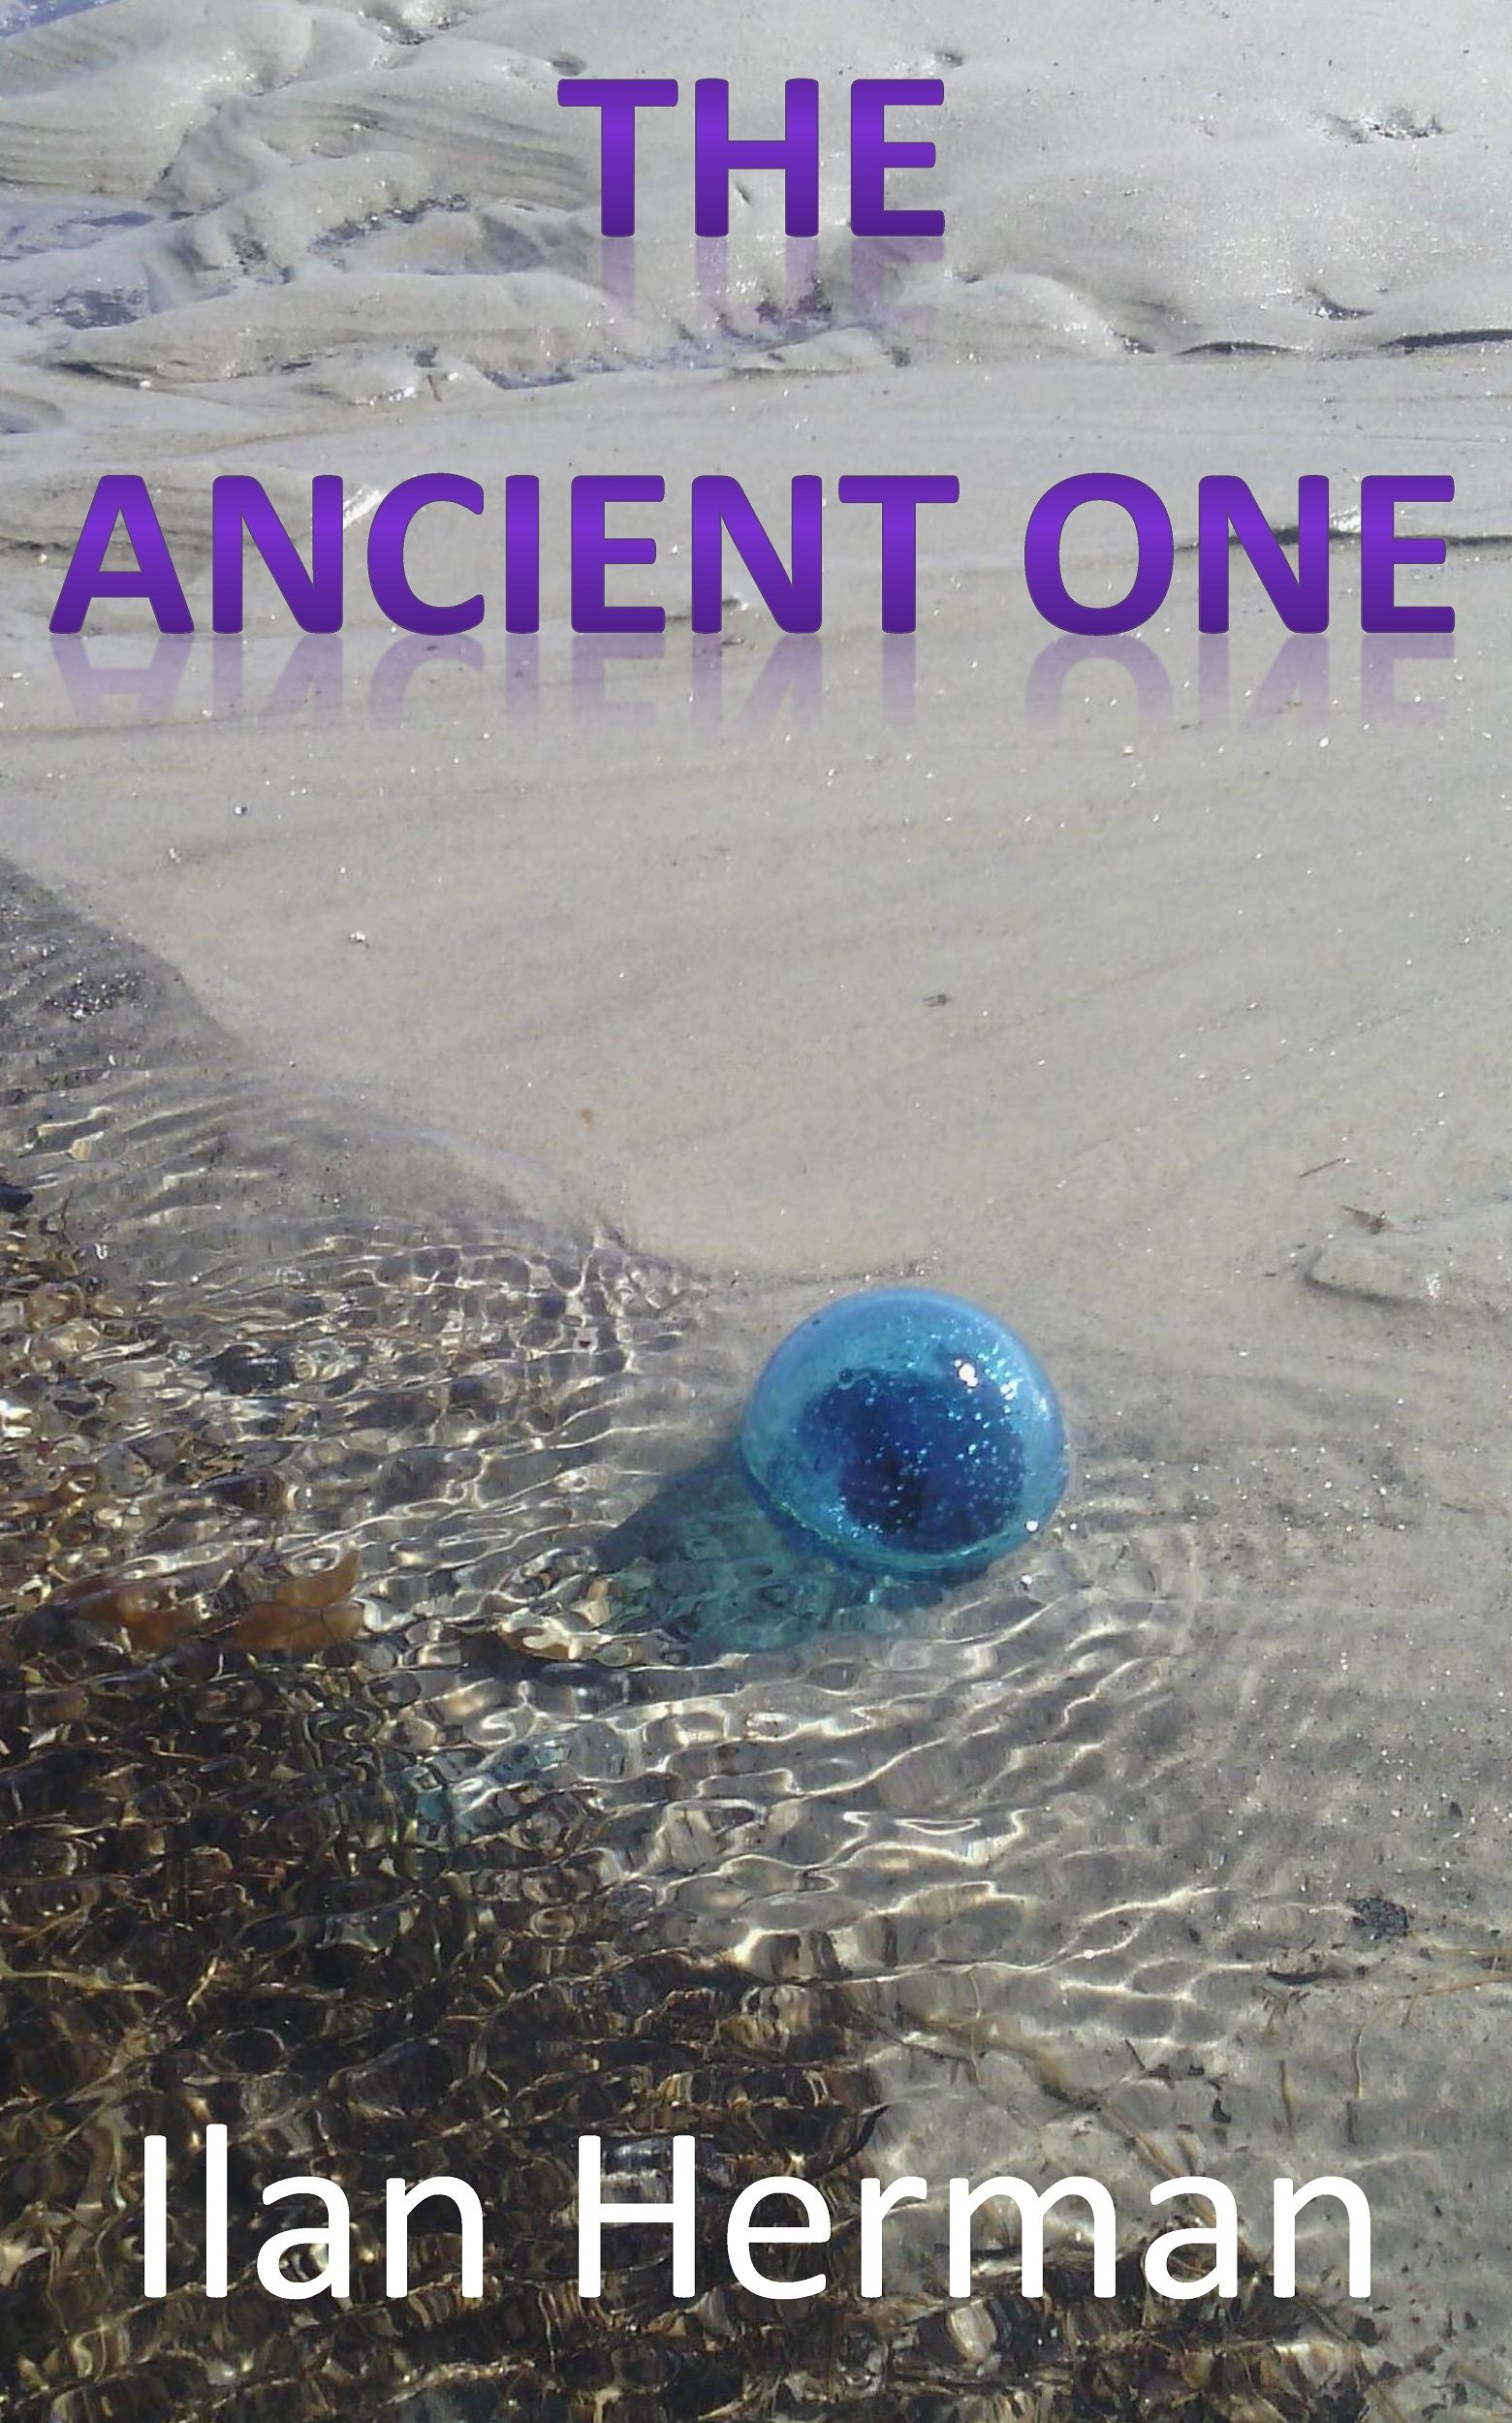 This Is The Cover Of The Ancient One About A Young Man In Africa